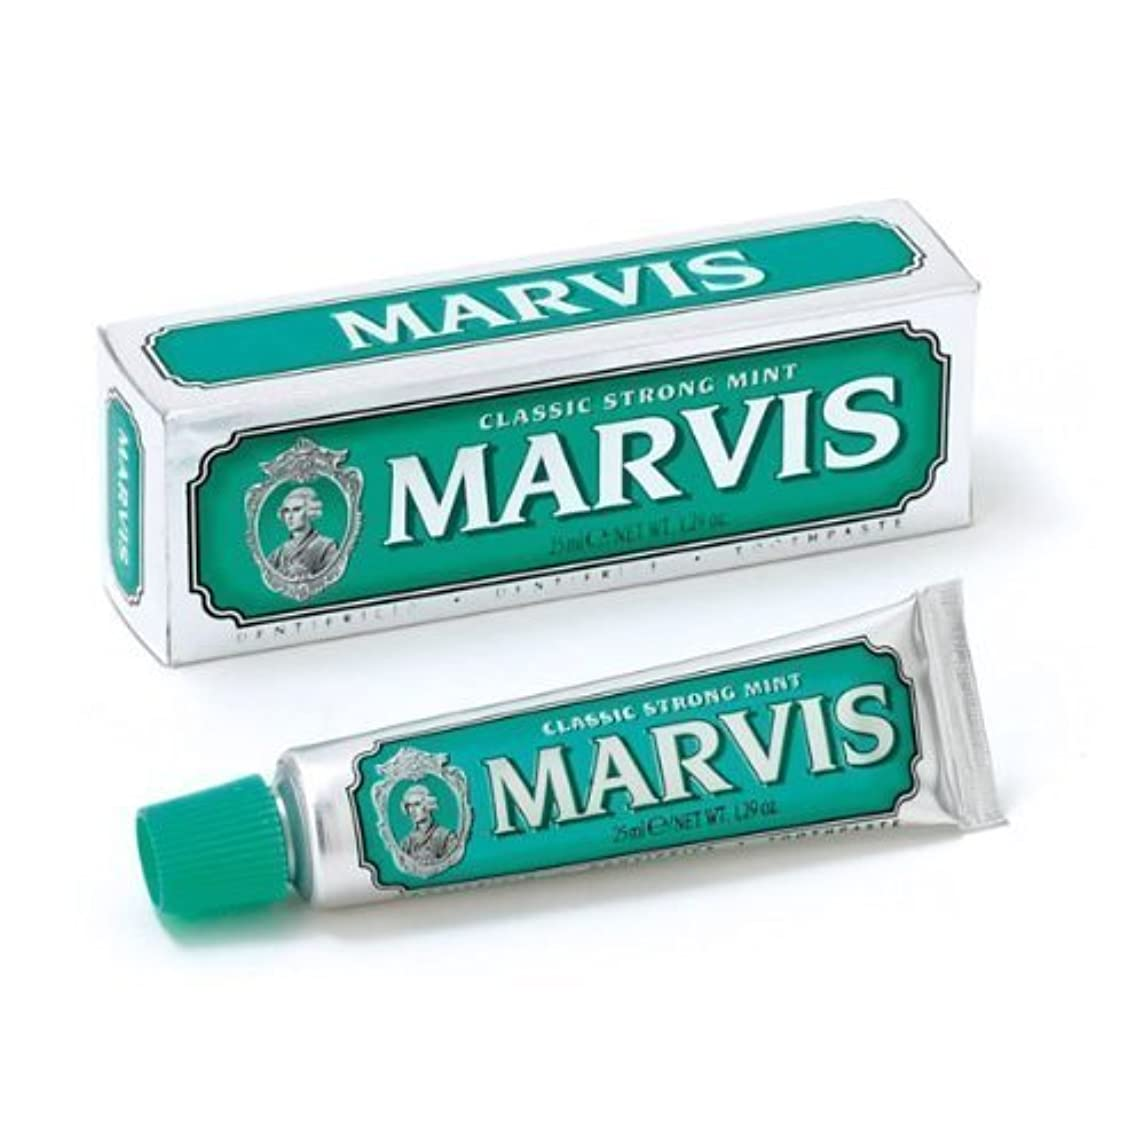 拡張しがみつく細断Marvis Toothpaste - Classic Strong Mint 25ml Travel Size - 4 PACK by Marvis [並行輸入品]